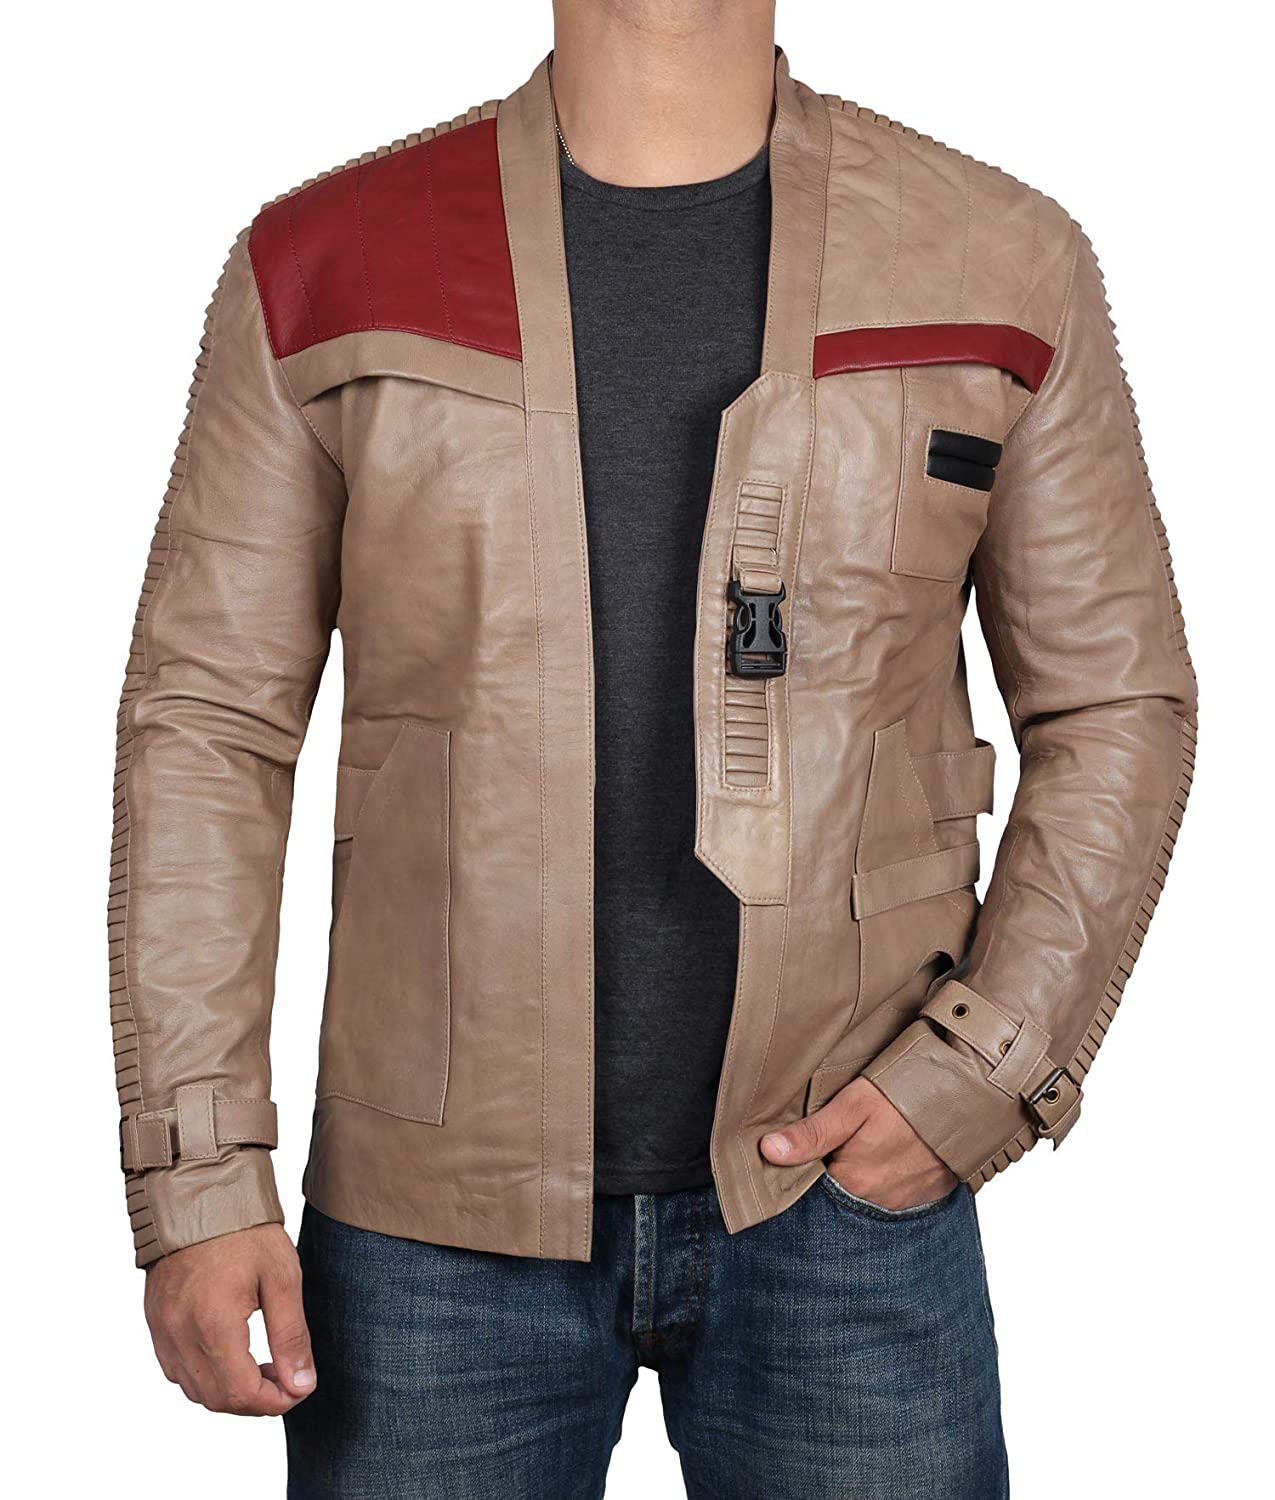 Mens Costume Jacket - Real Biker Distressed Leather Jacket Men